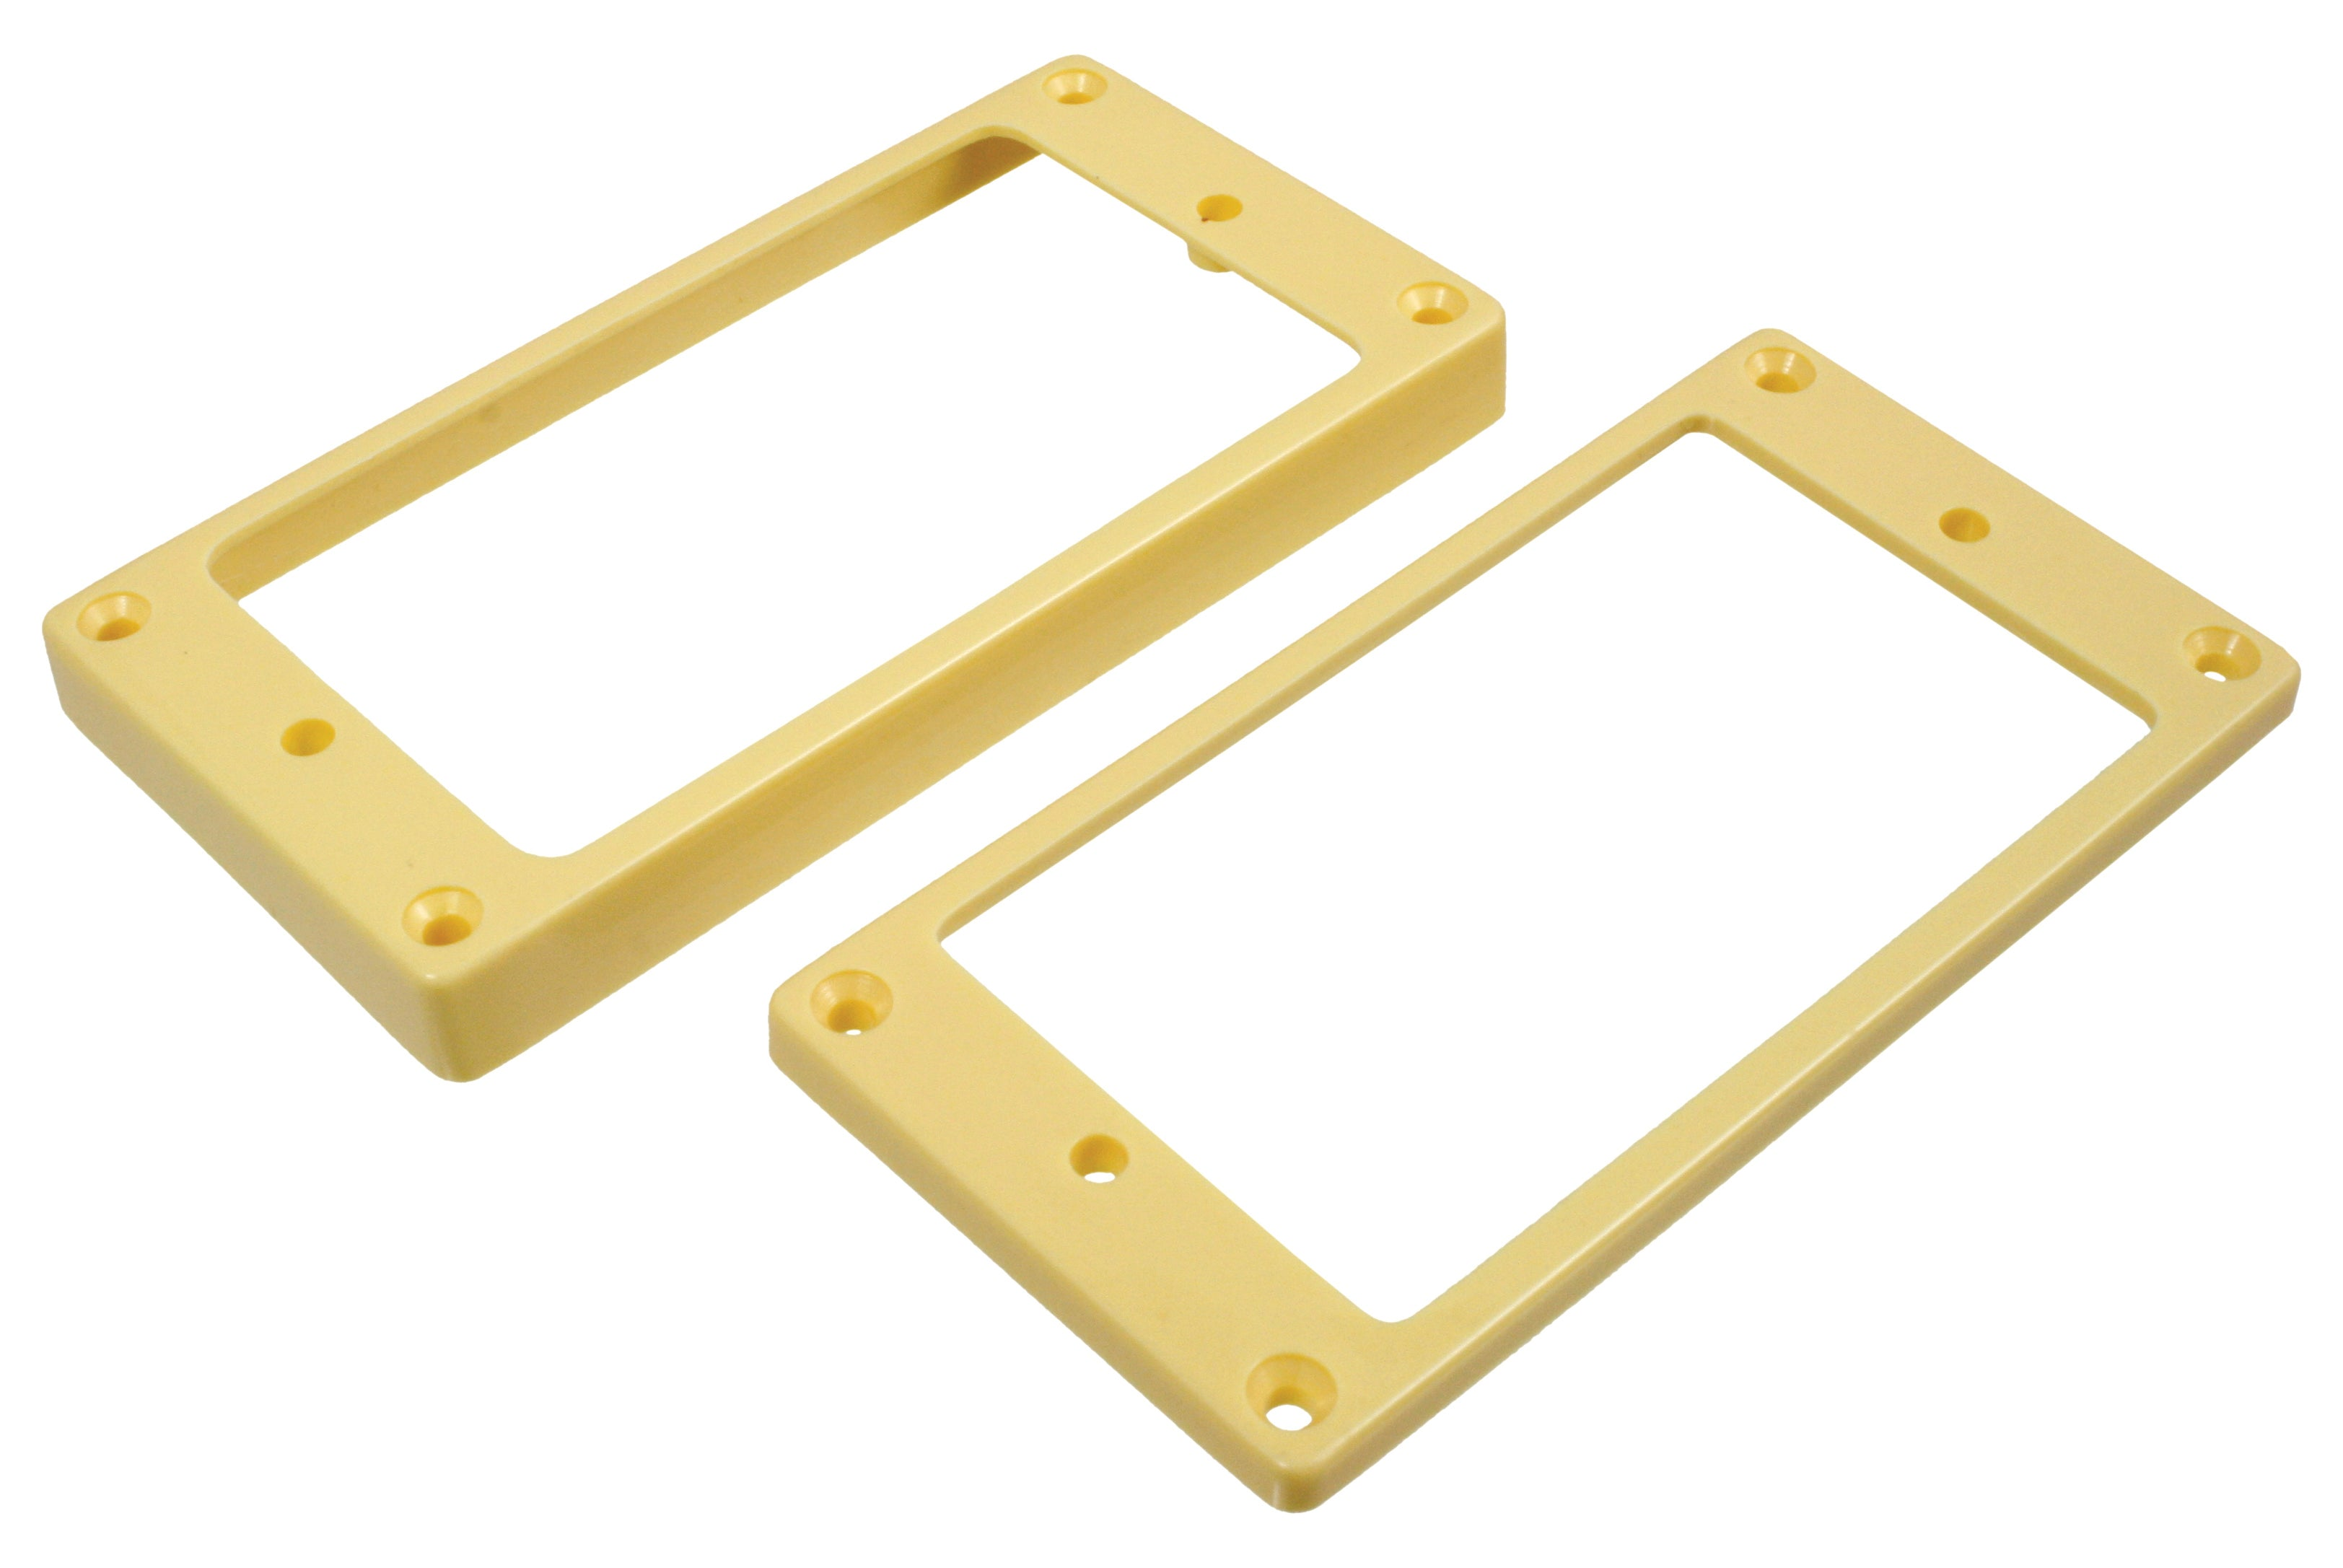 PC-6743 Humbucking Pickup Ring Set for Epiphone®